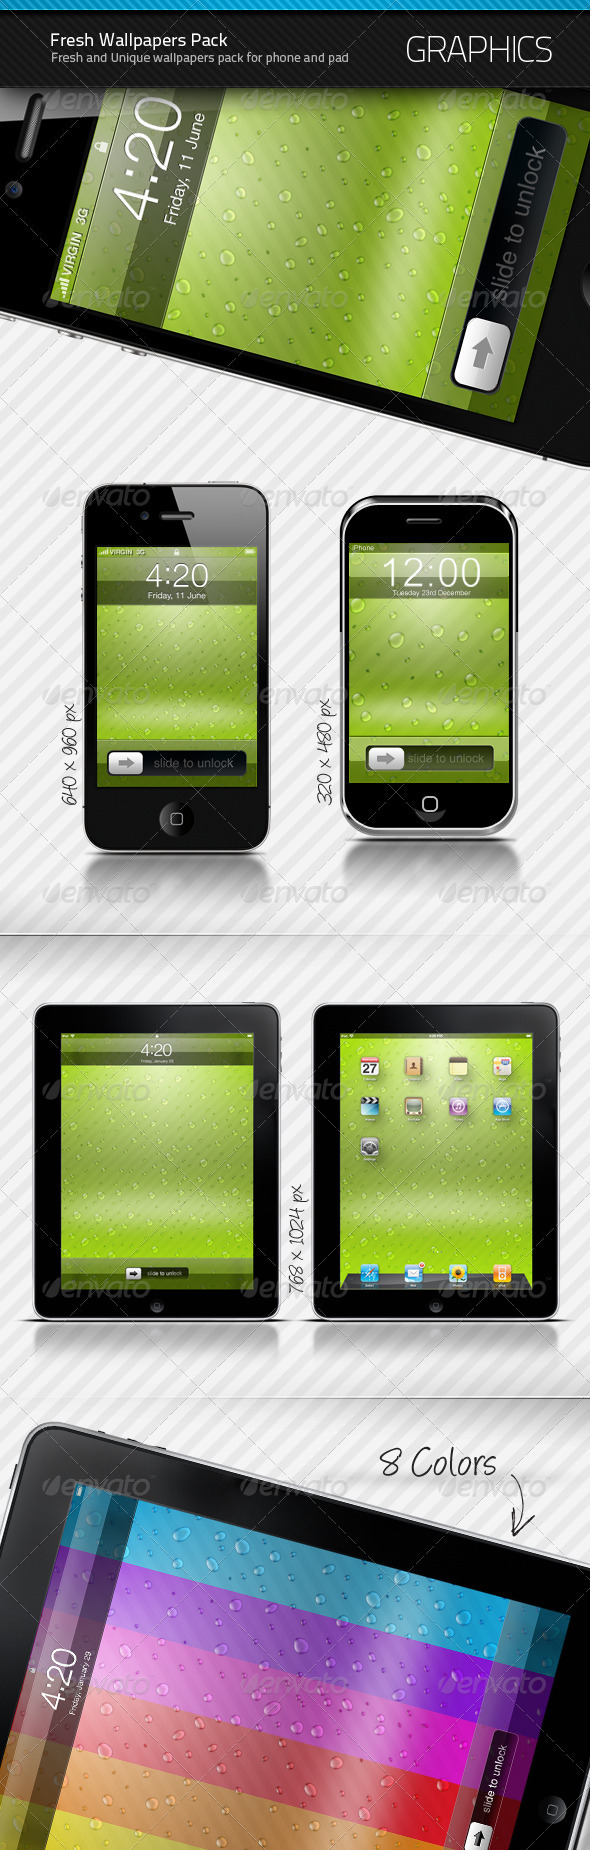 GraphicRiver Phone and Pad Fresh Wallpapers Pack 136364